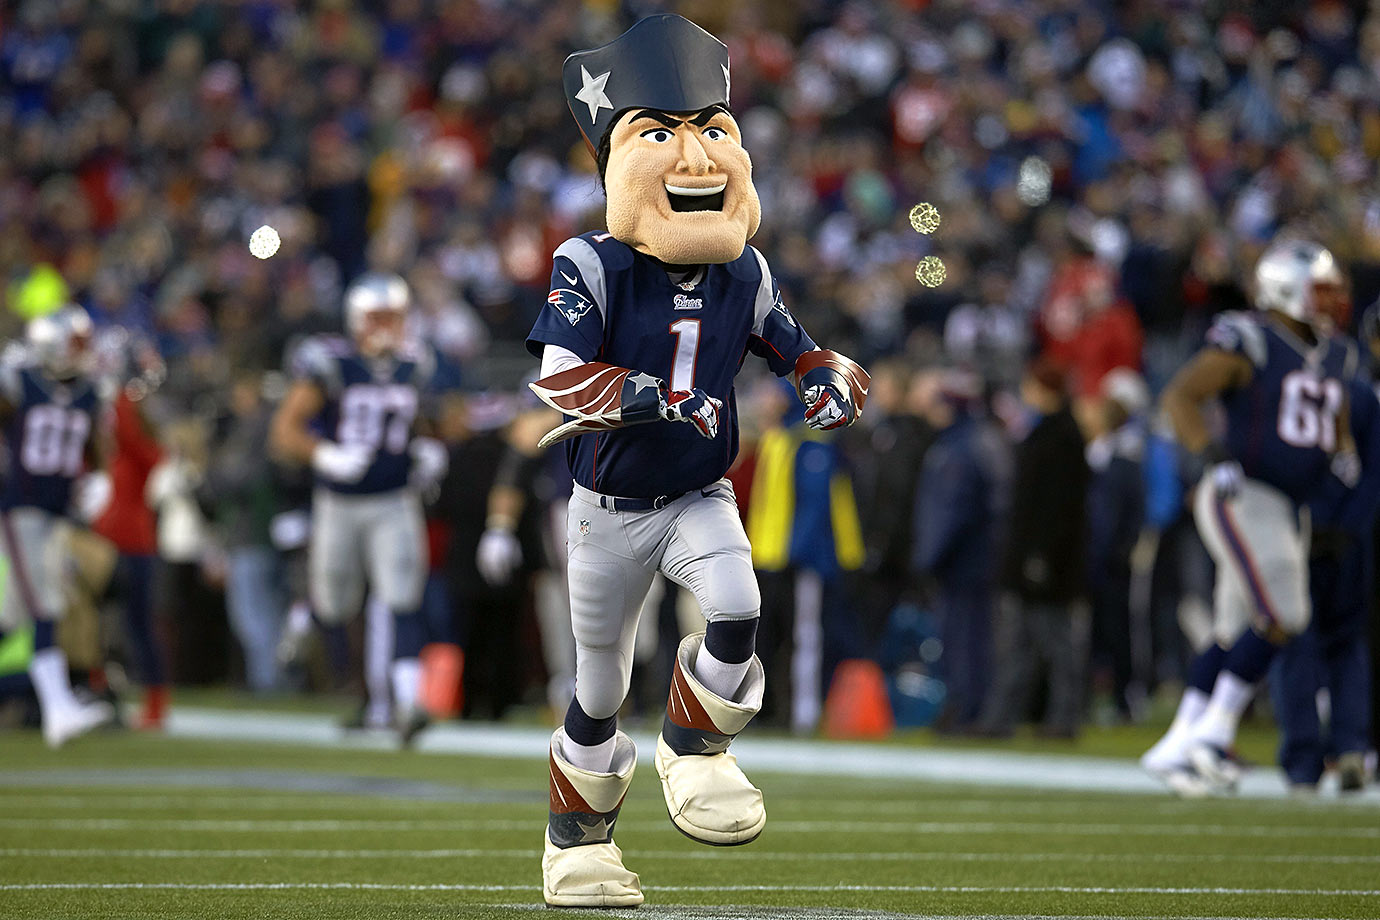 The real Pat the Patriot was a center for the old New England Patriots (which explains why the Bears defensive line destroyed the Patriots in Super Bowl XX). This Pat the Patriot is a muppet-like version that is obviously allergic to bee-stings and regularly inflated balls.